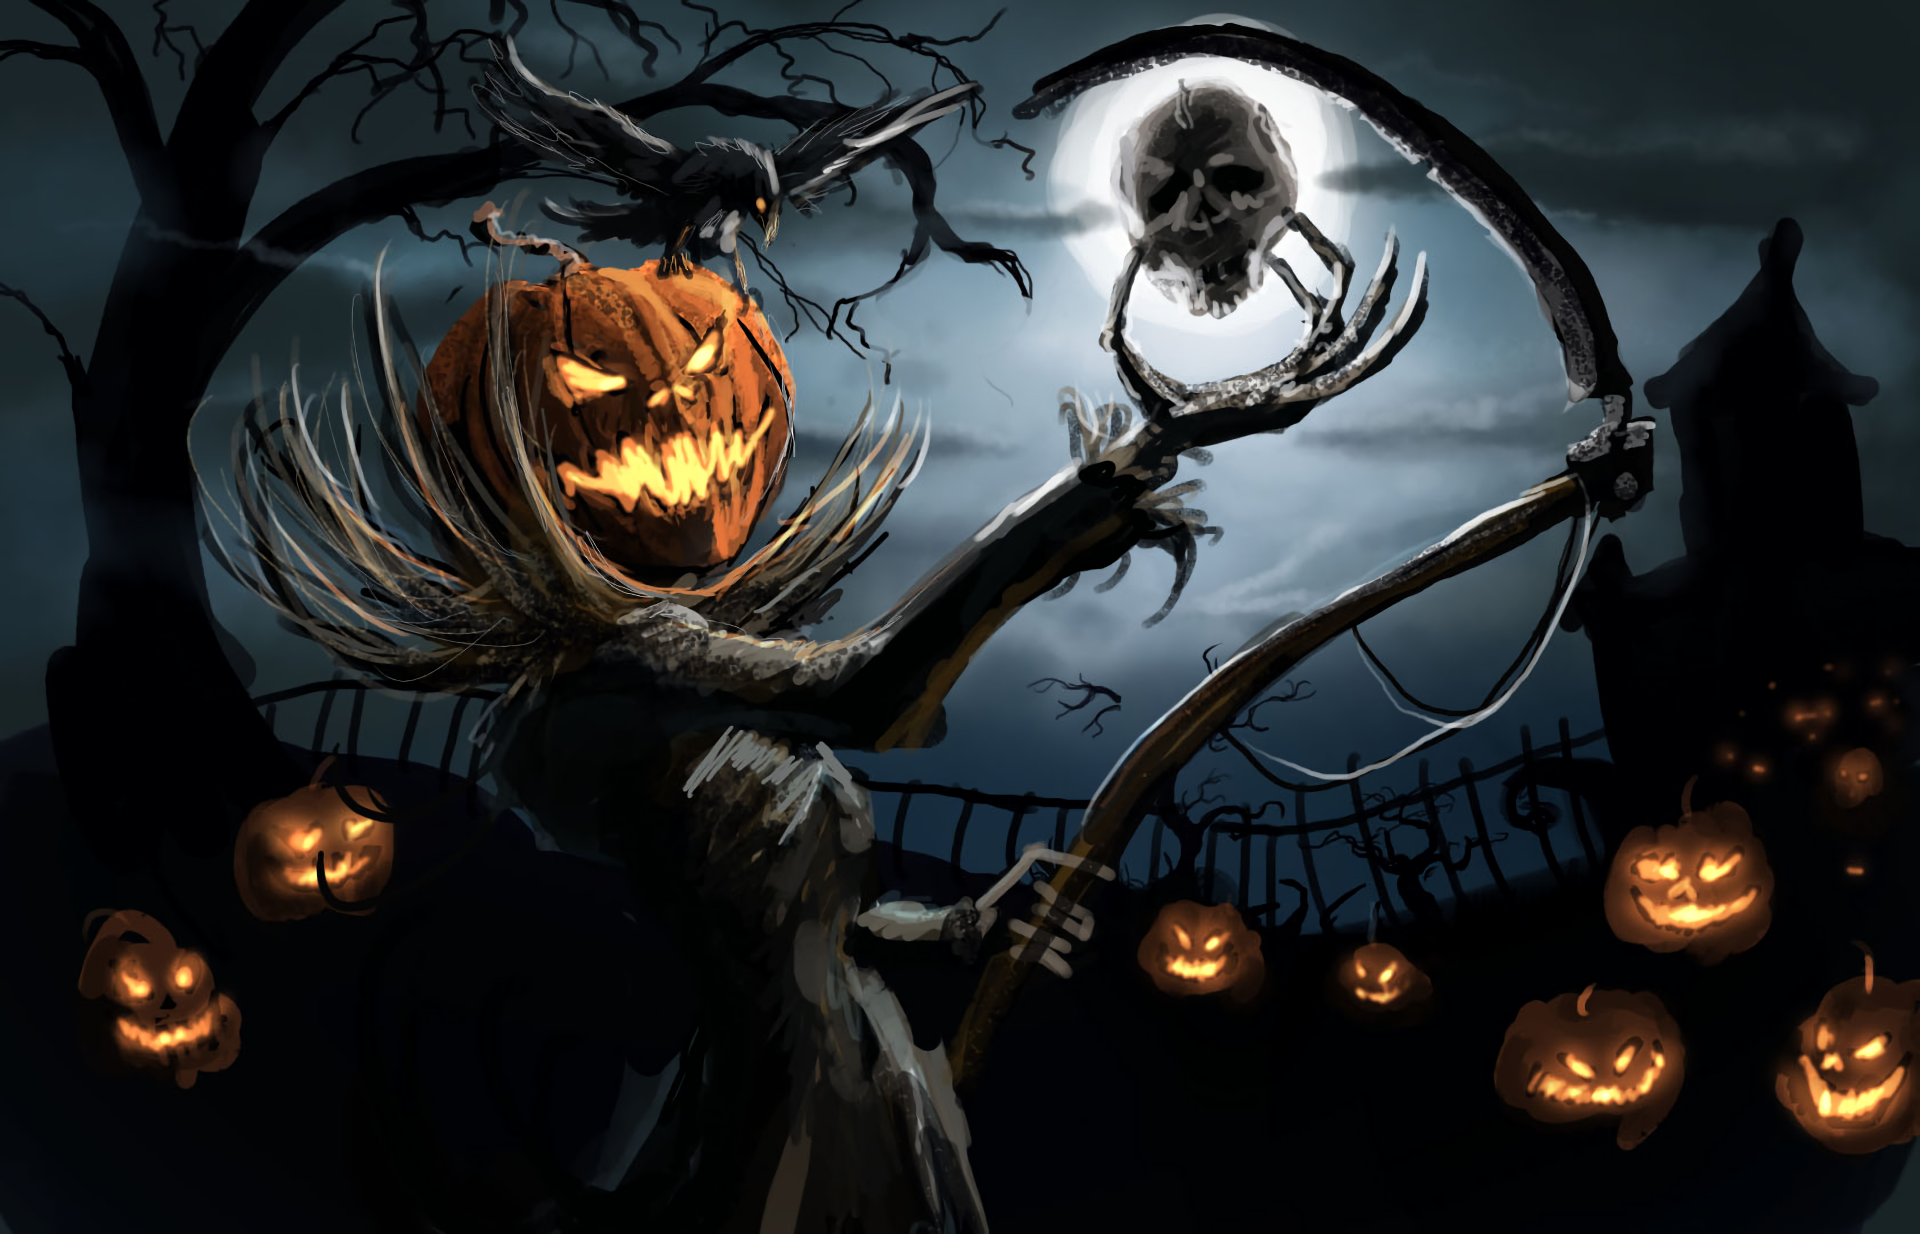 Jack O Lantern Halloween Pumpkin Wallpaper Iphone Android